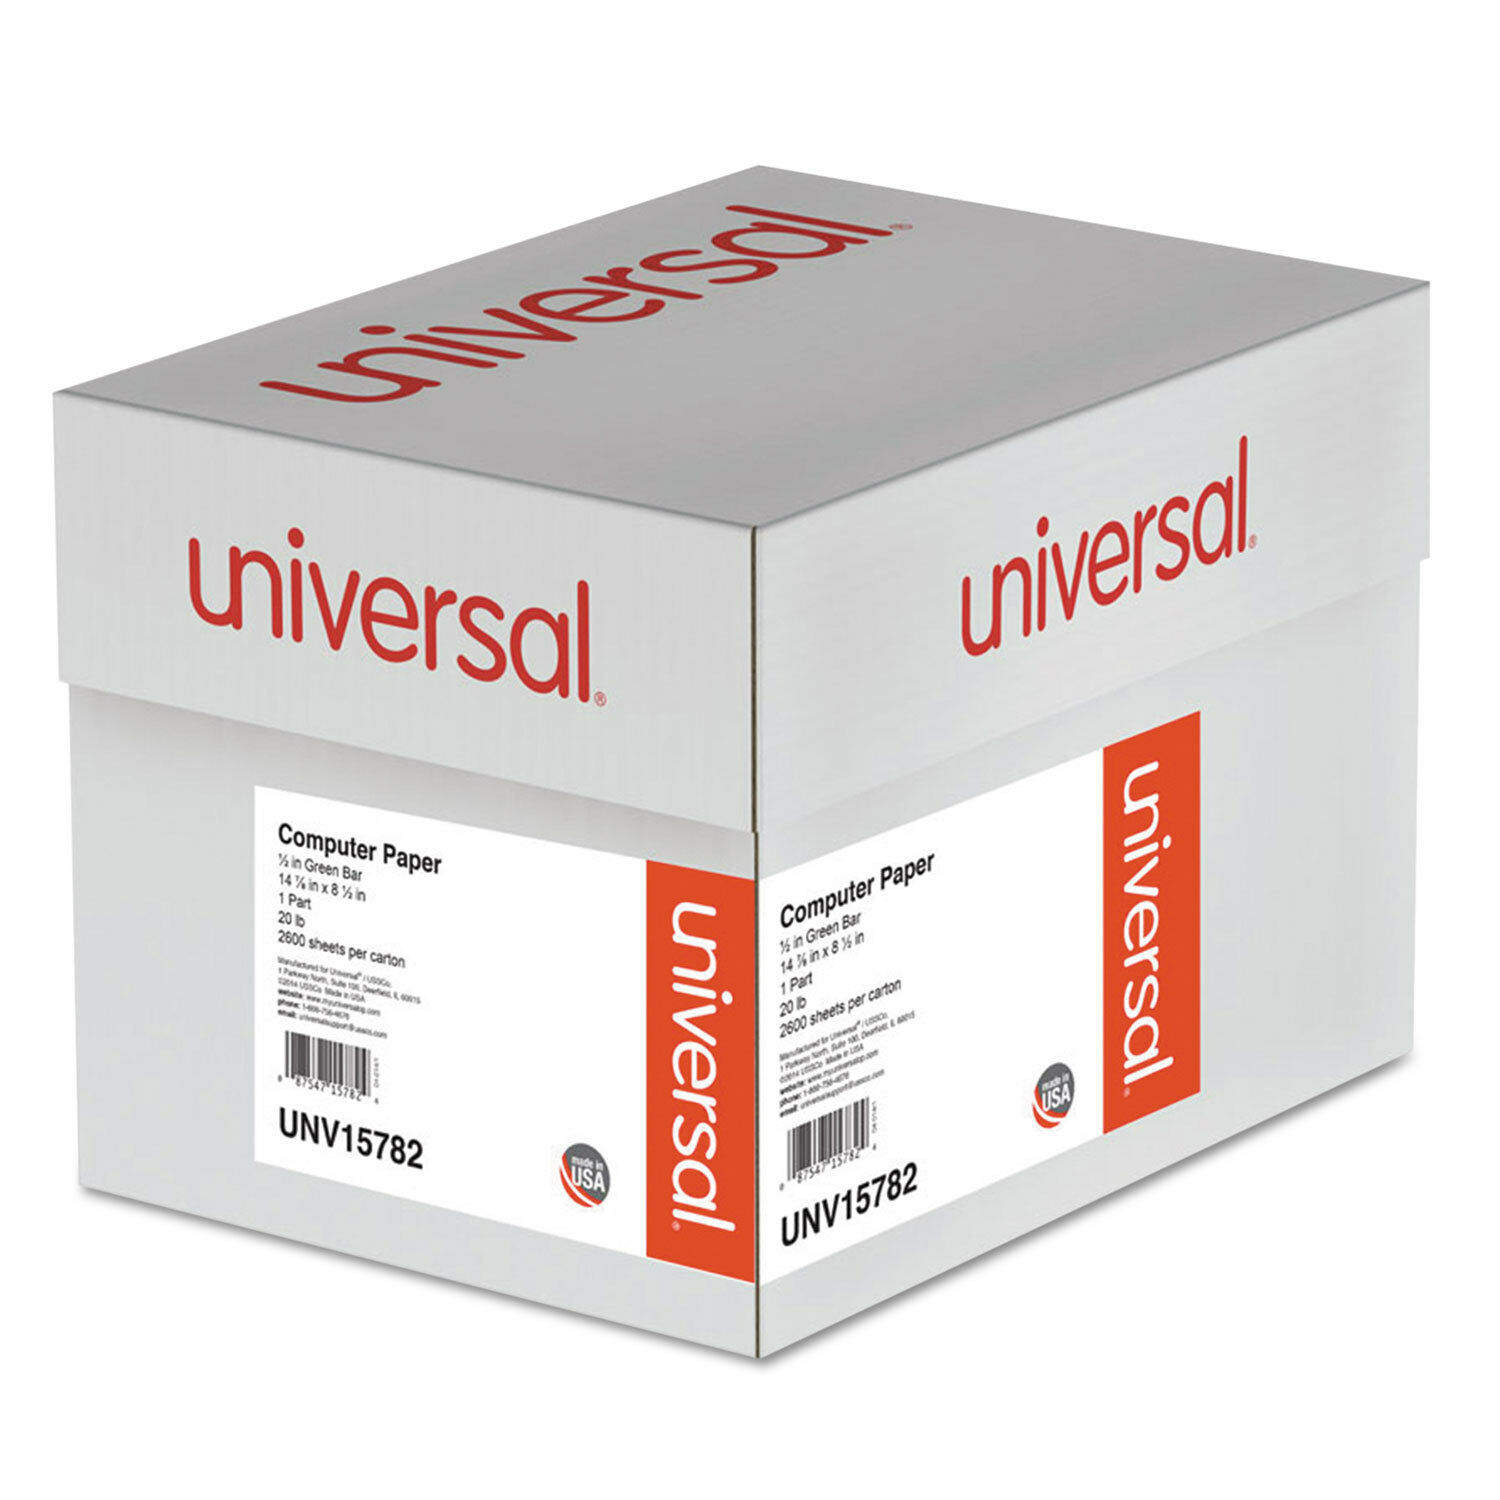 UNIVERSAL Green Bar Computer Paper 20lb 14-7 8 x 8-1 2 Perforated Margins 2600